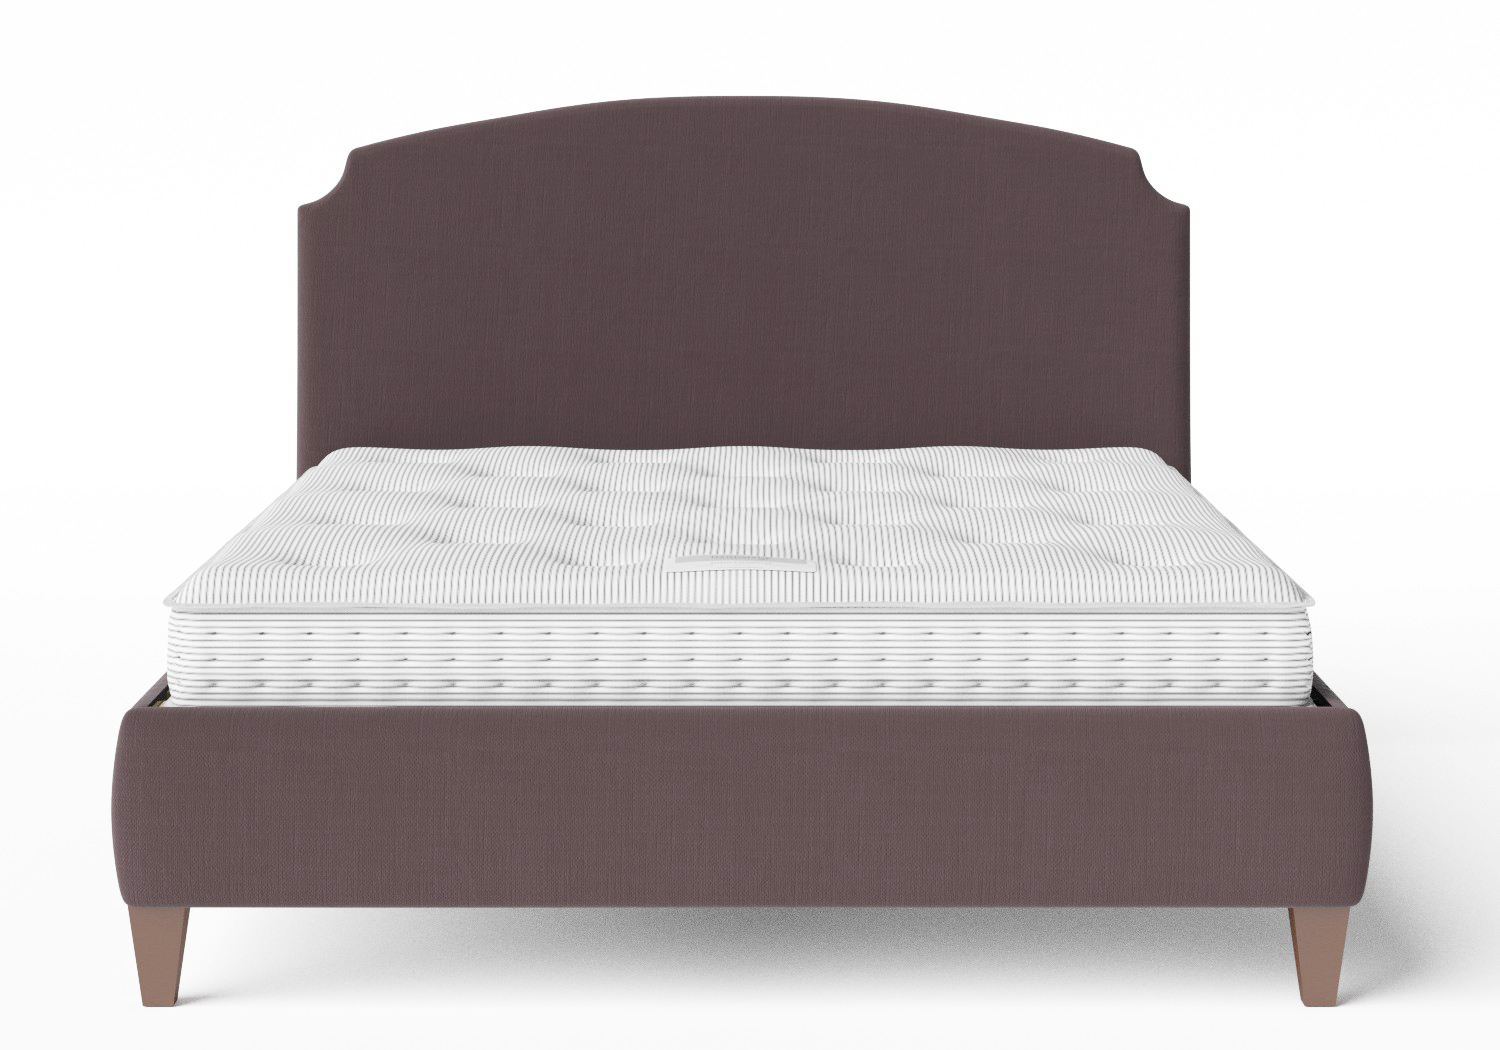 Lide Upholstered Bed in Aubergine fabric shown with Juno 1 mattress